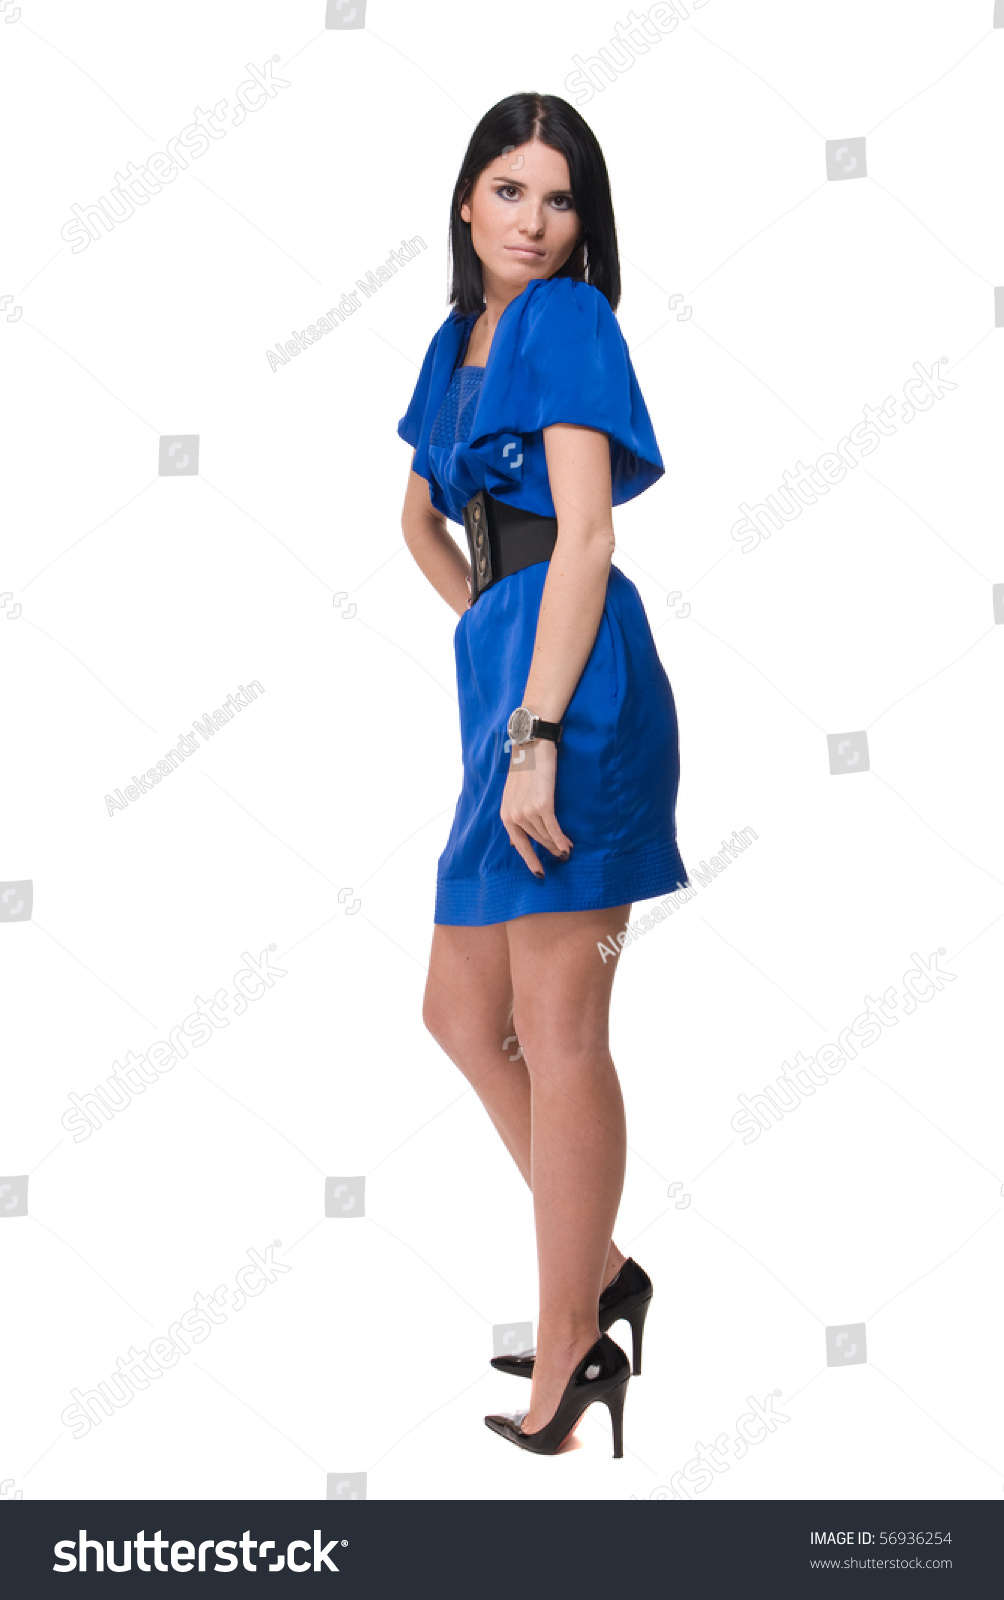 Perfect Stunning Woman In Blue Dress On Black Background Royalty Free Stock